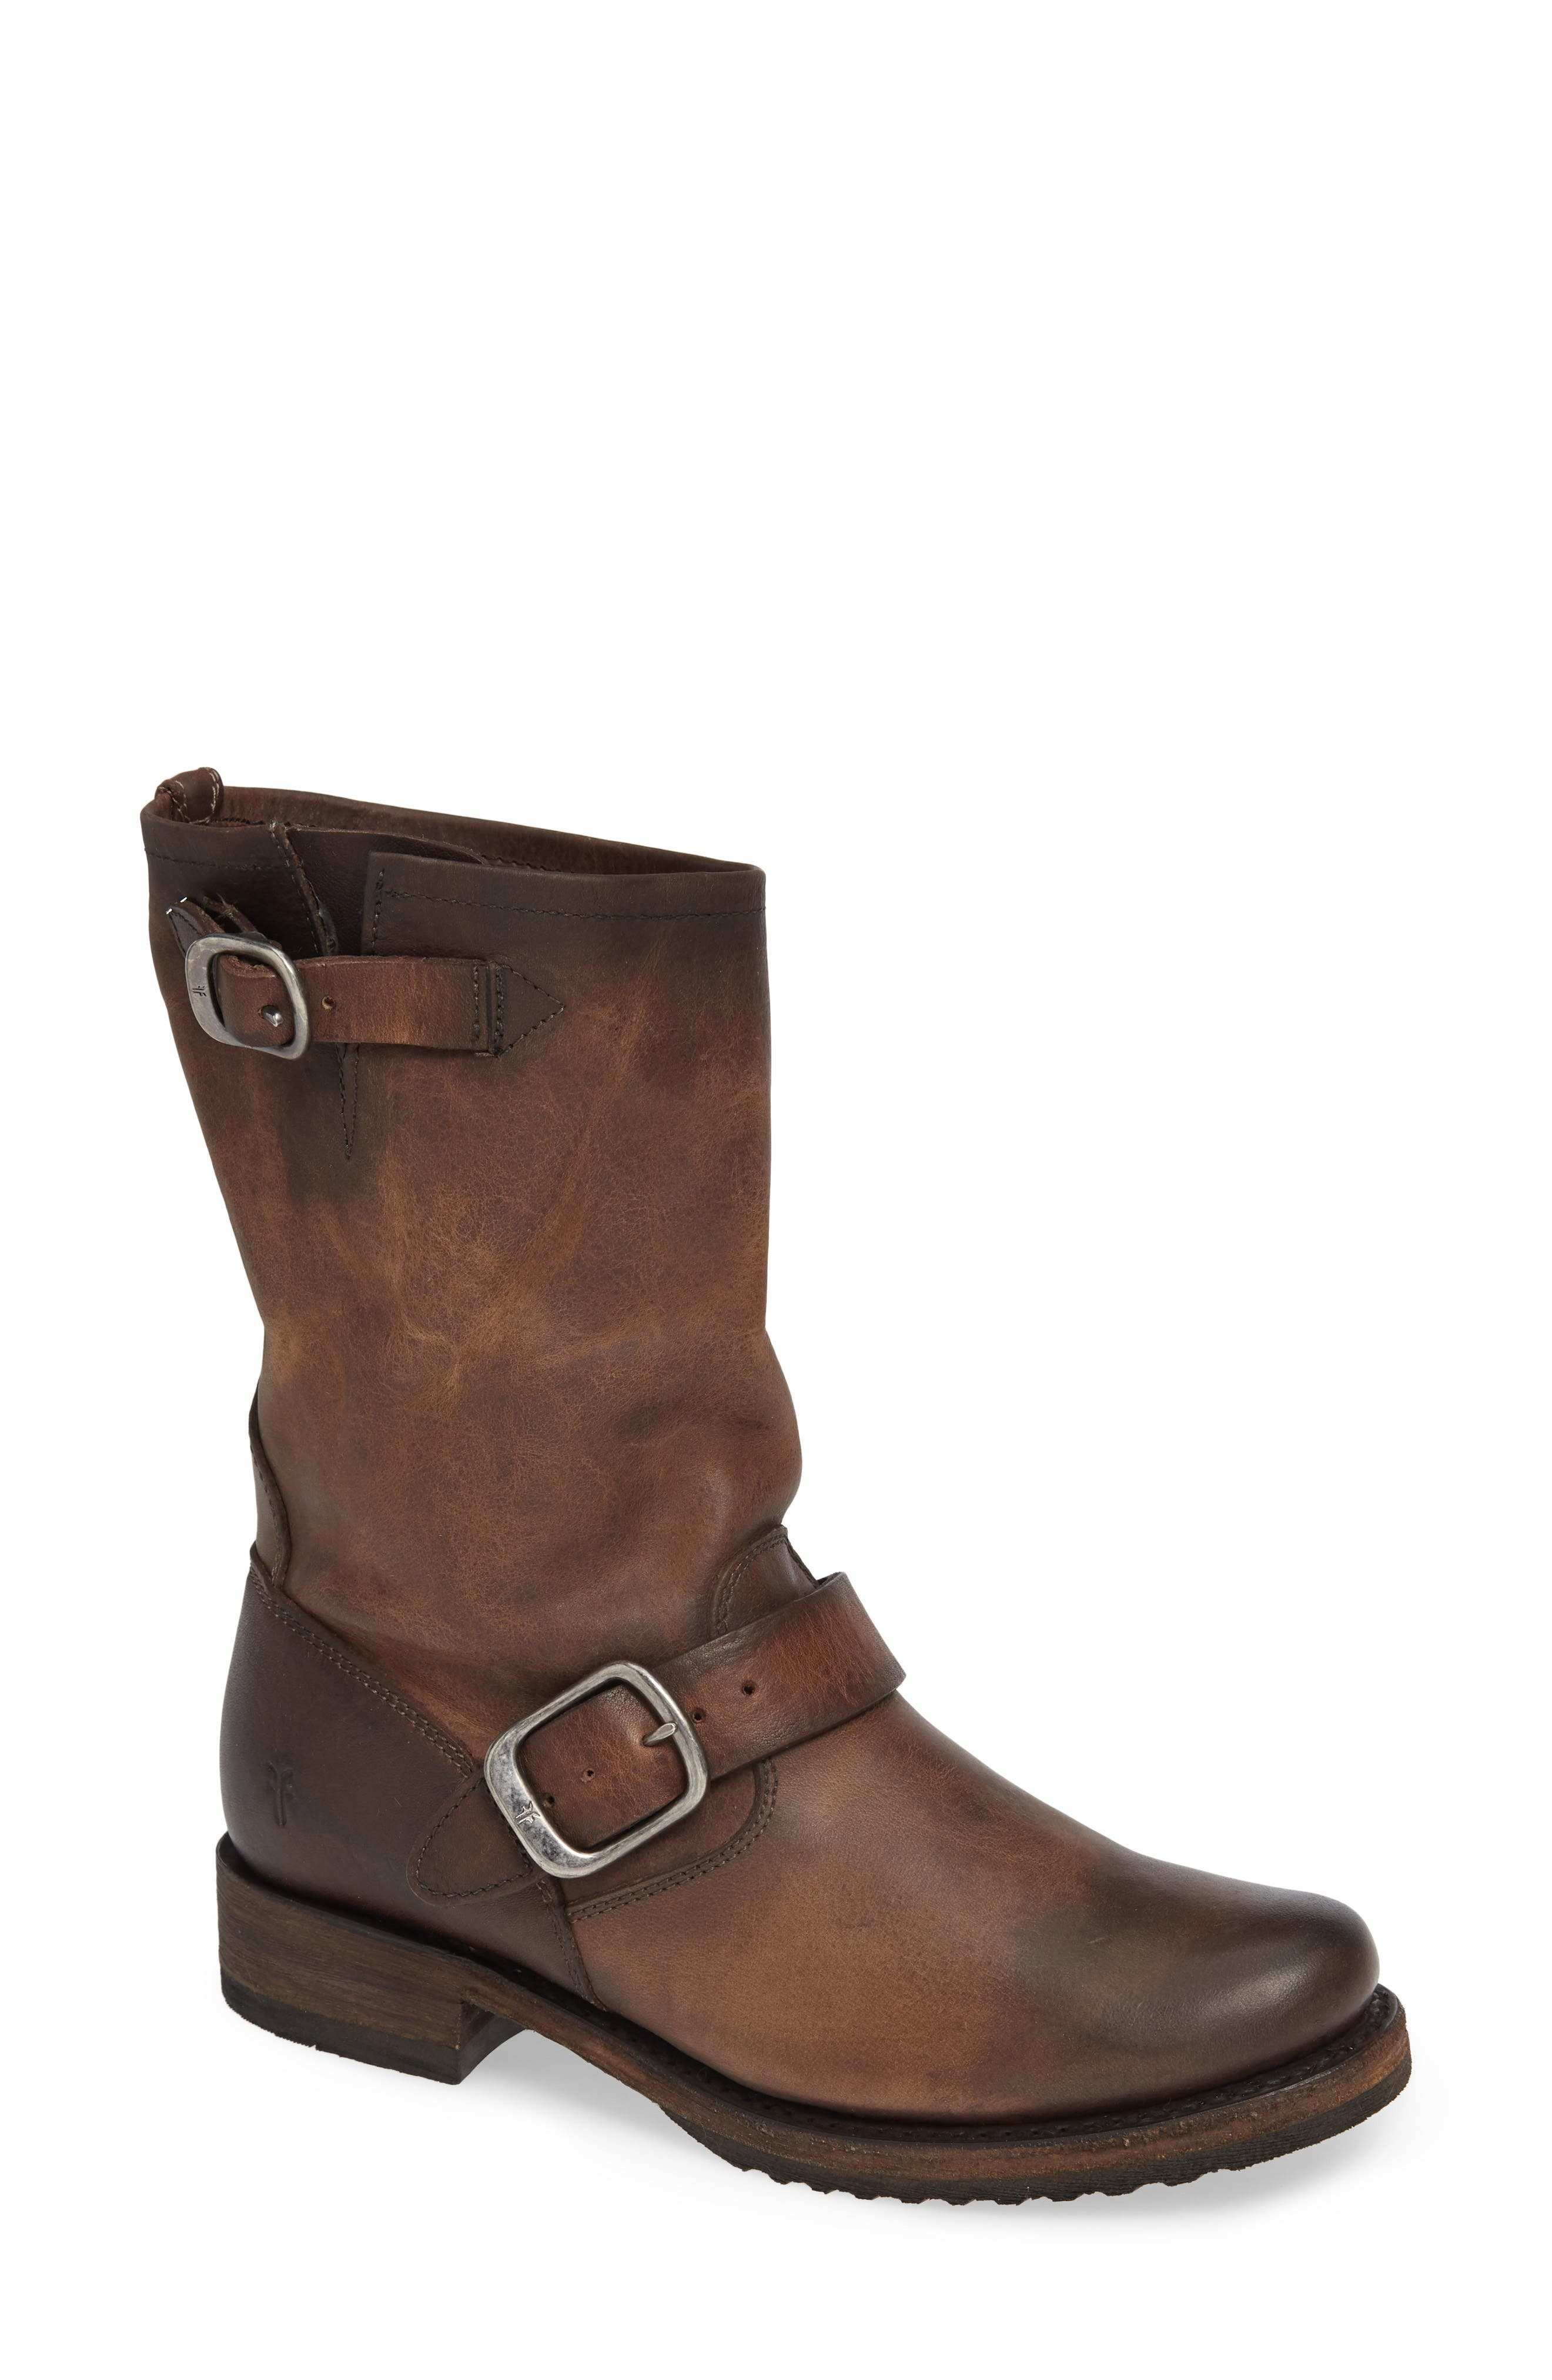 'Veronica' Short Boot,                             Main thumbnail 1, color,                             BROWN LEATHER